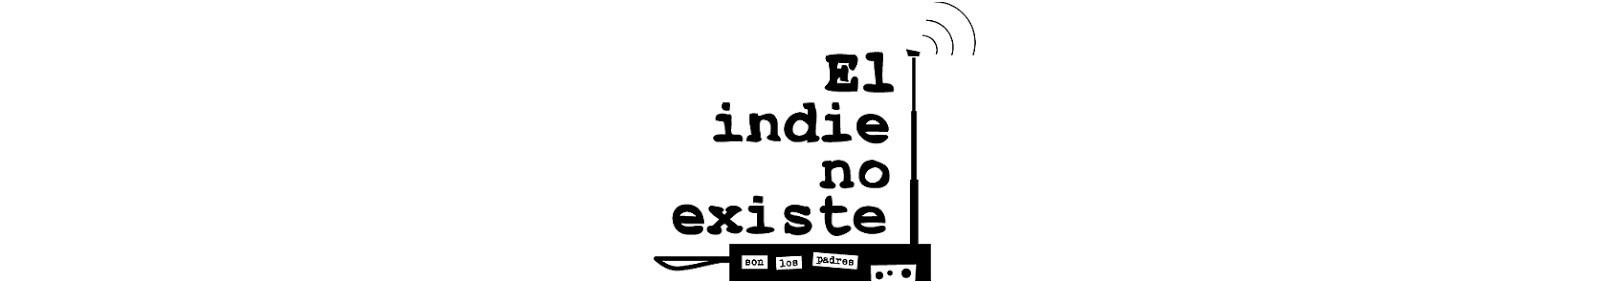 Elindienoexiste.com